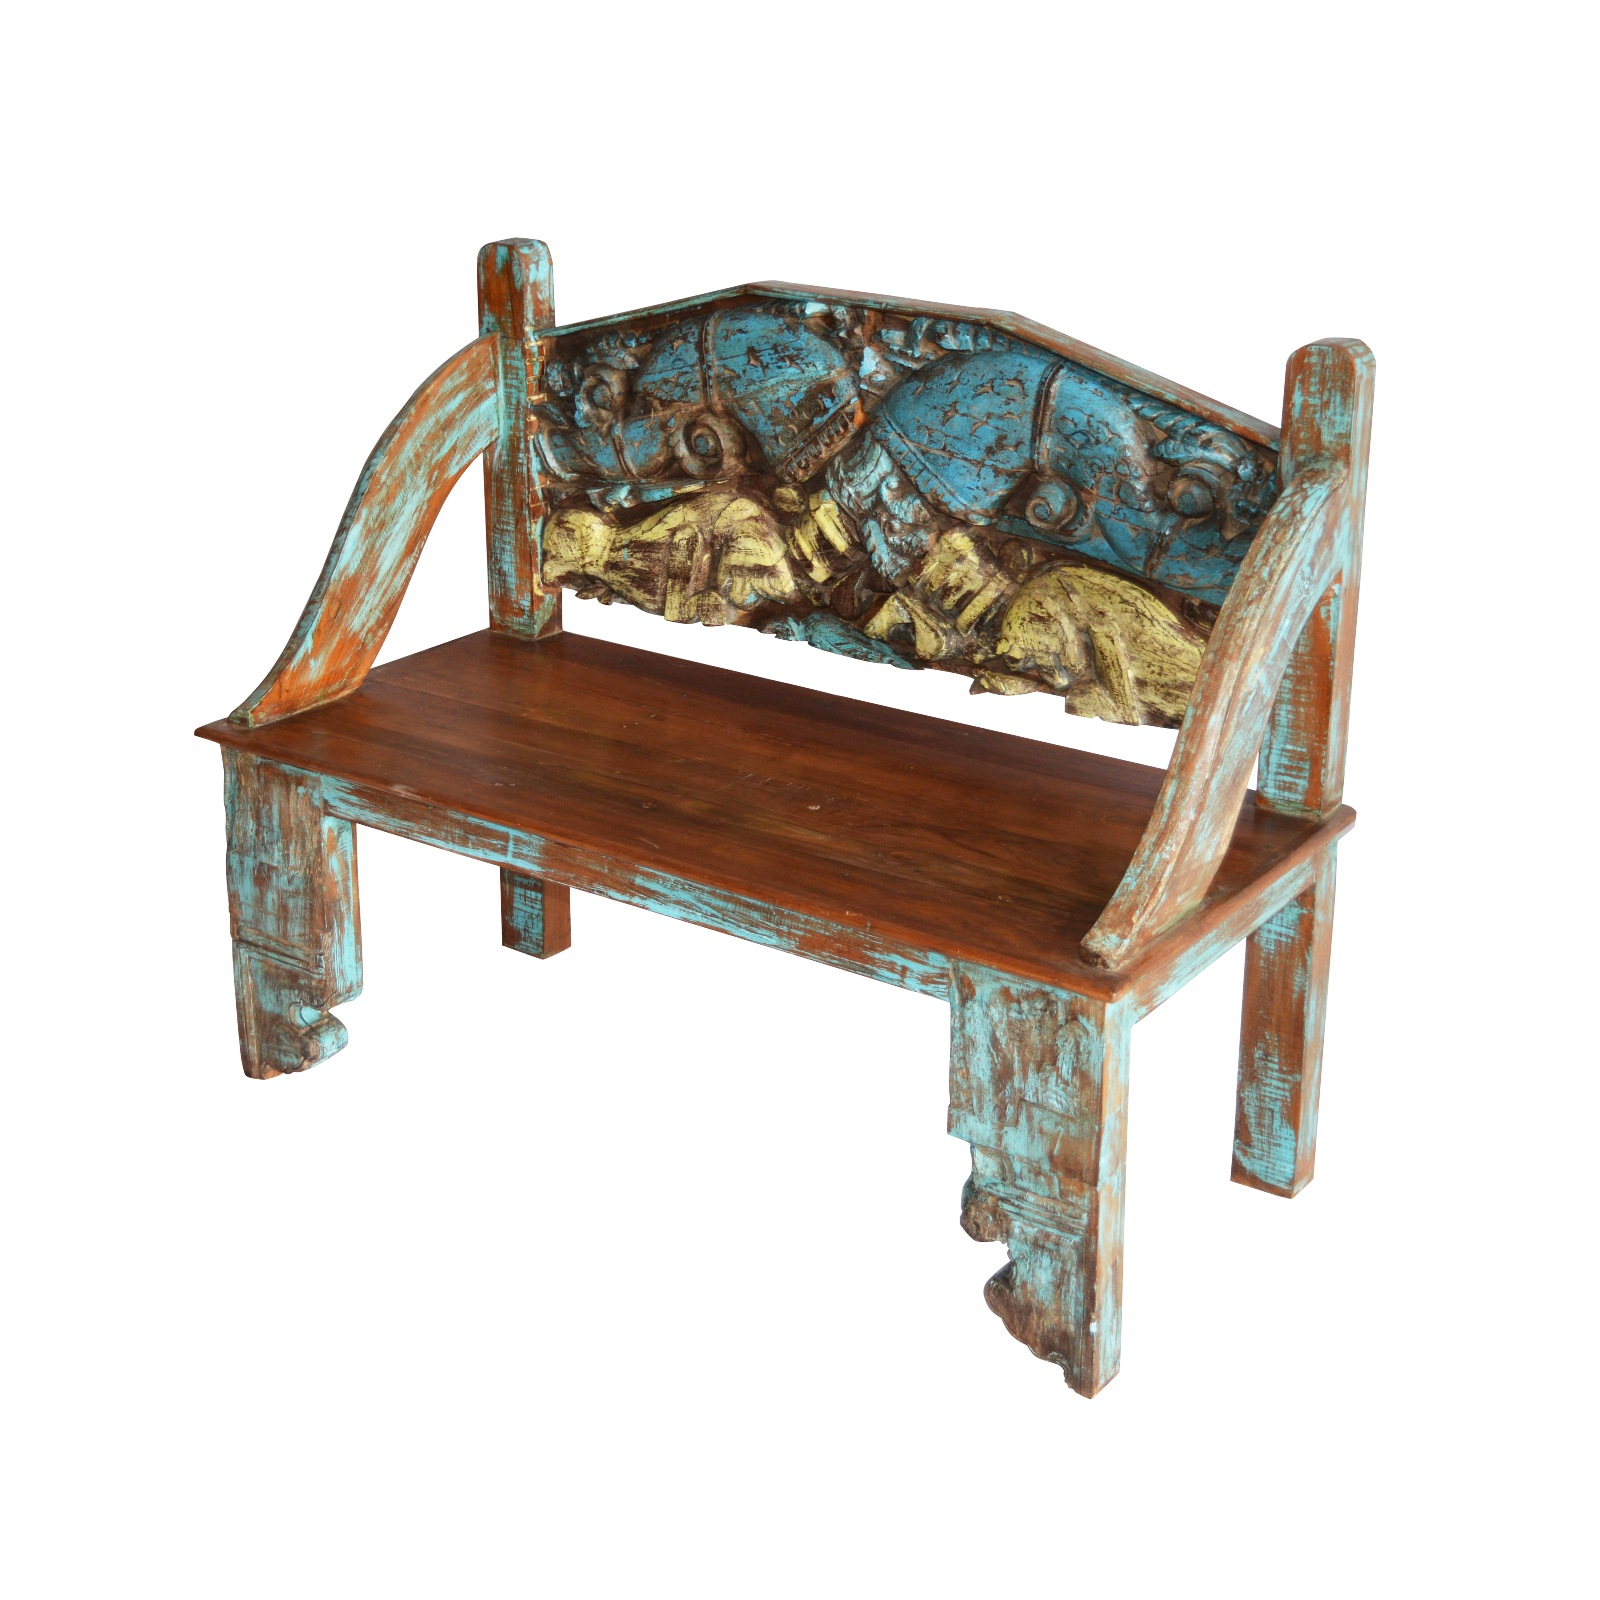 OLD TEAK WOOD CARVED BENCH